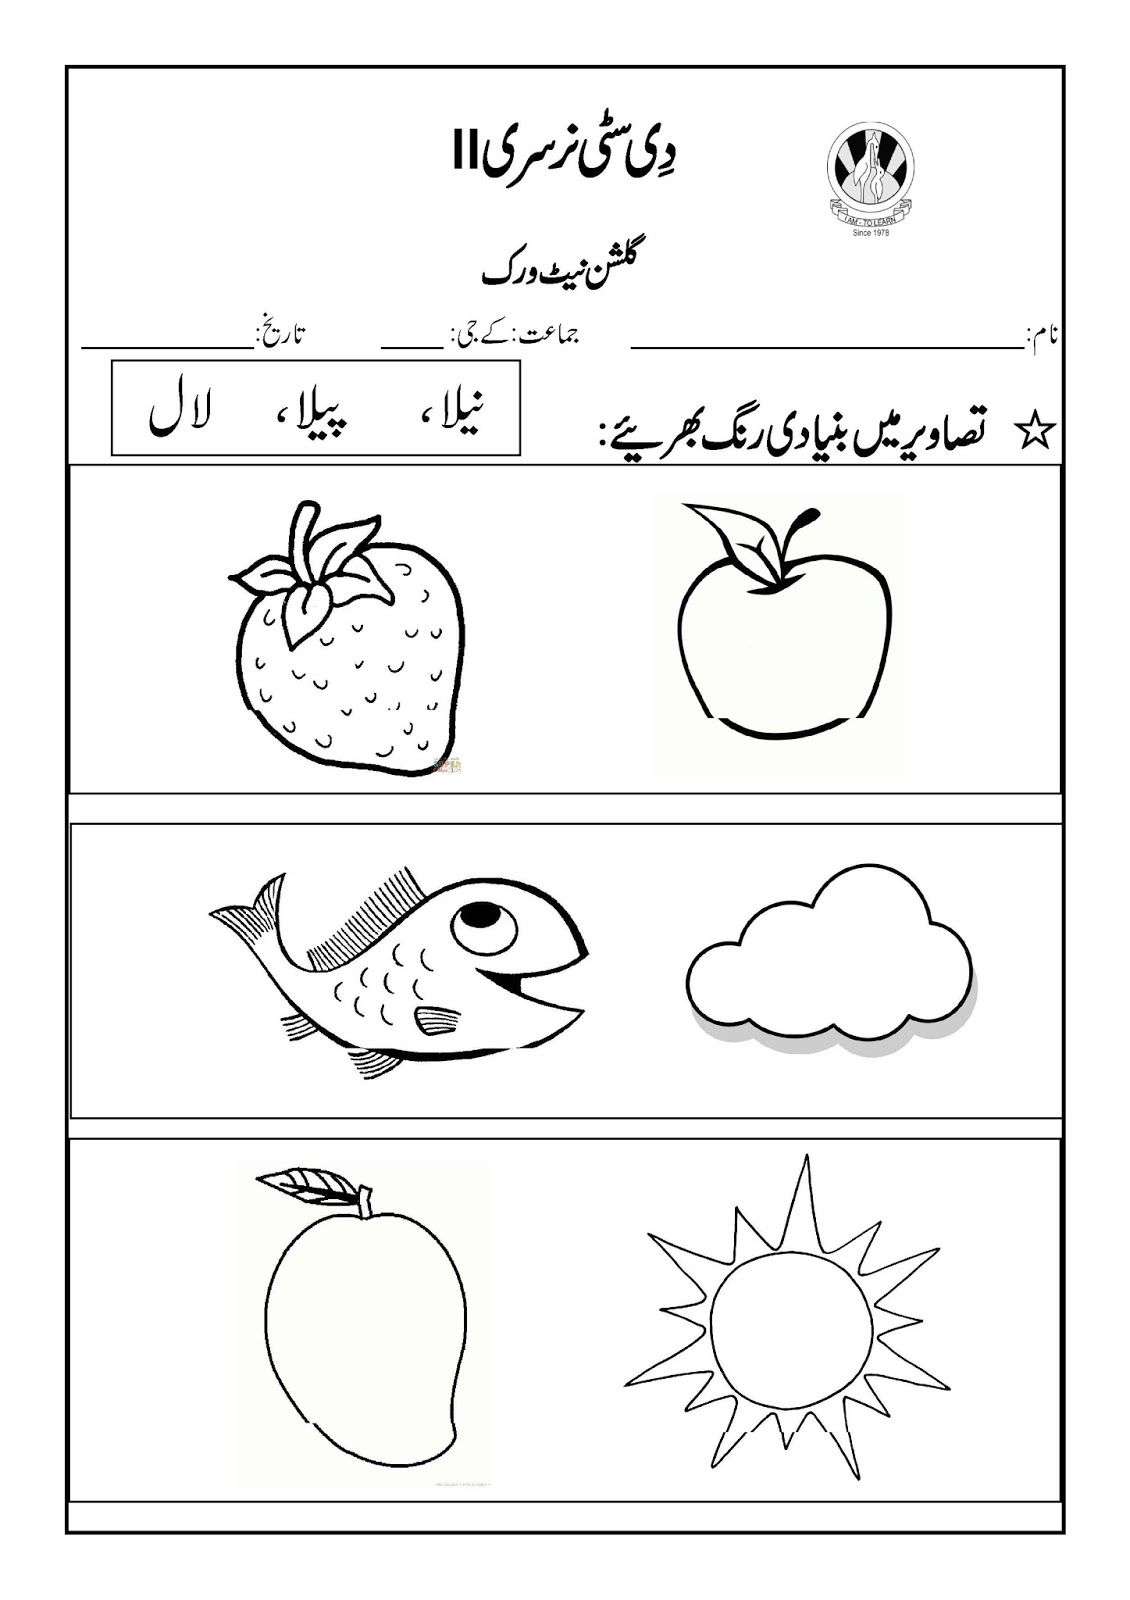 Image Result For Urdu Worksheets For Nursery | Alphabet within Alphabet Urdu Worksheets Pdf